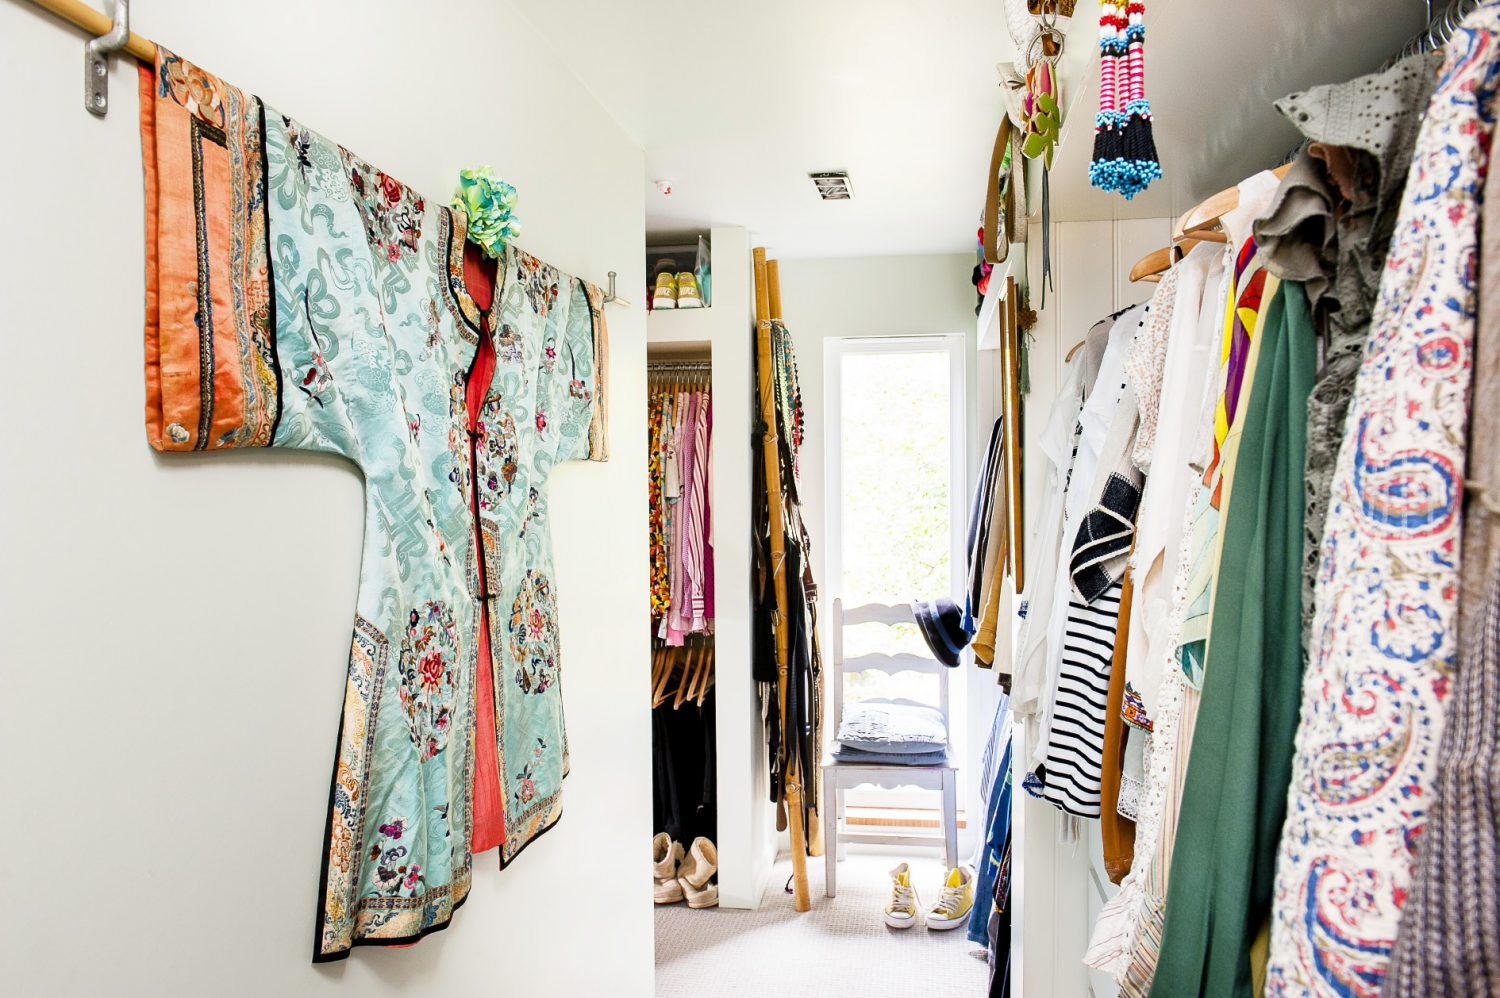 A kimono hangs on the wall of the dressing room